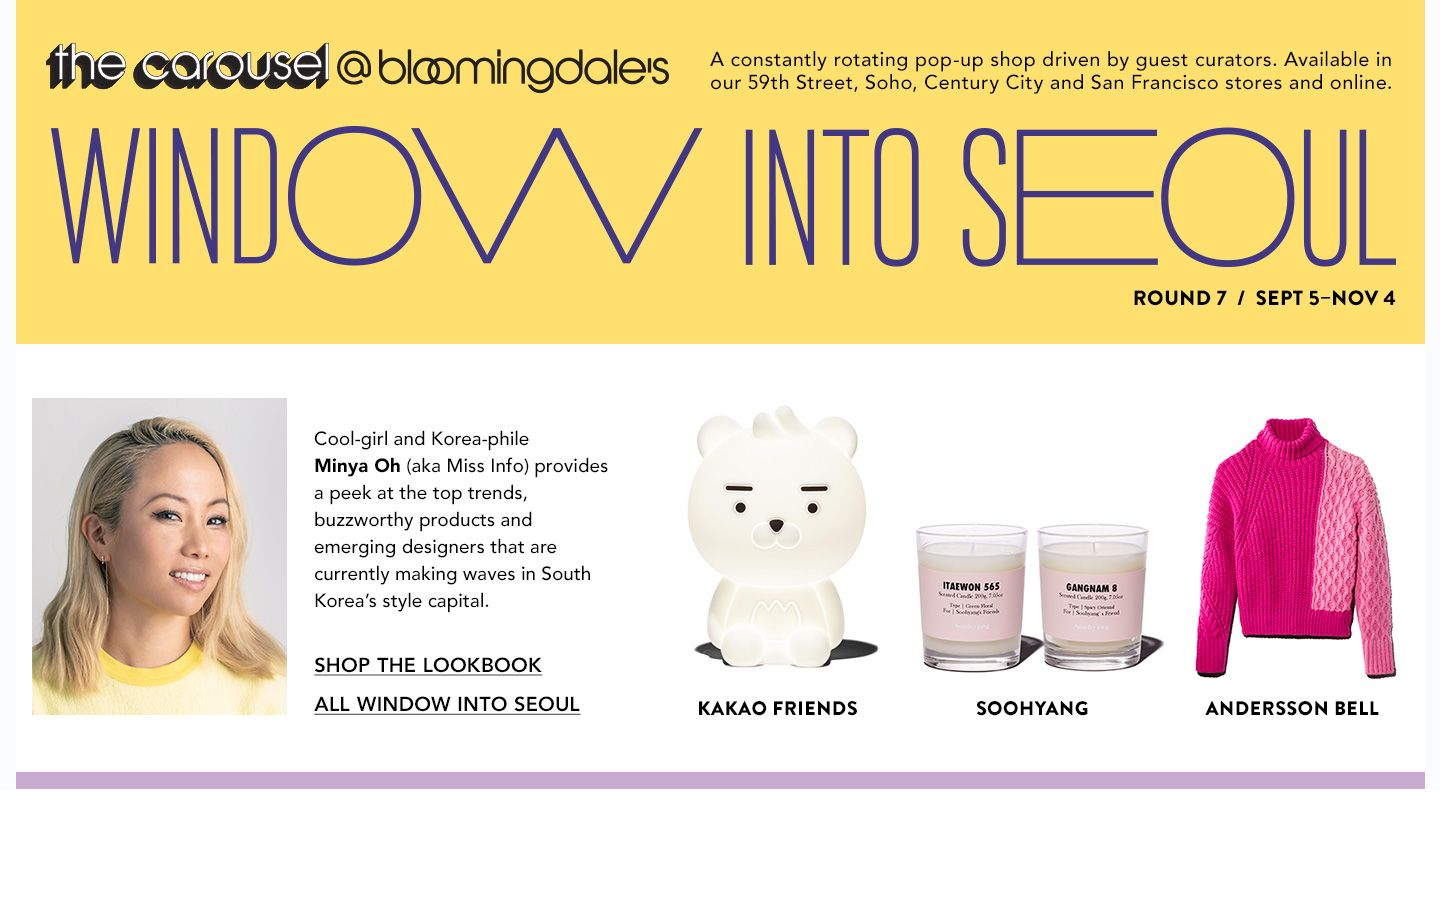 September 5 to November 4. The Carousel at Bloomingdale's. Window Into Seoul. Cool-girl Minya Oh provides a peek at the top trends, products & designers making waves in South Korea's style capital.